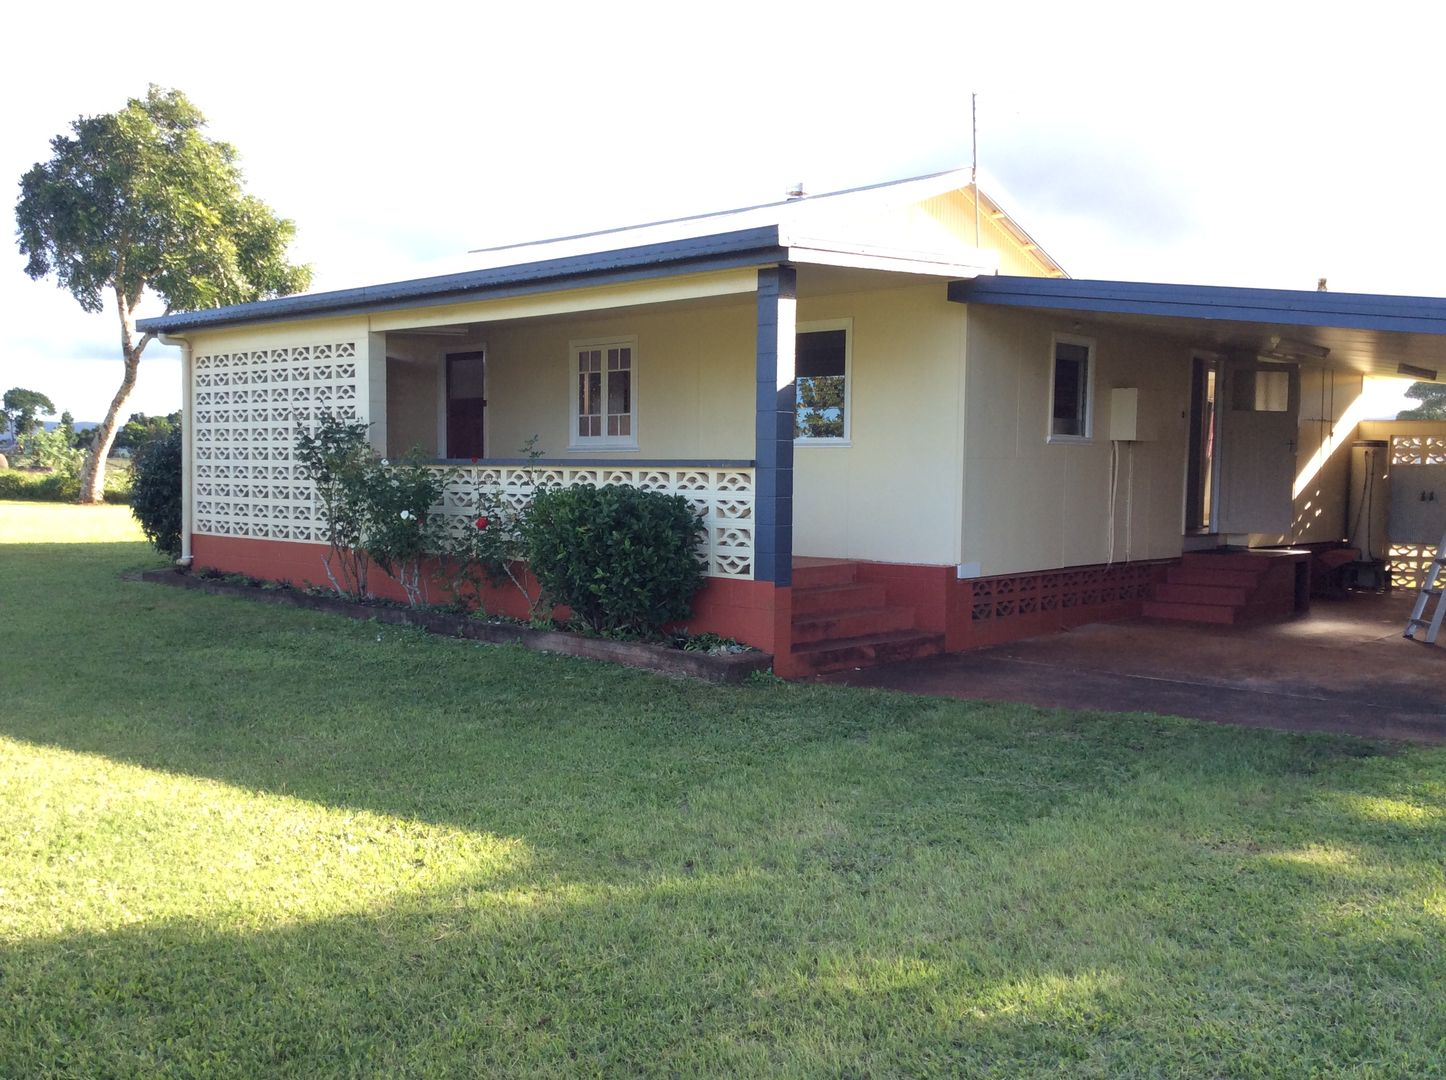 EAST BARRON ROAD, East Barron QLD 4883, Image 0